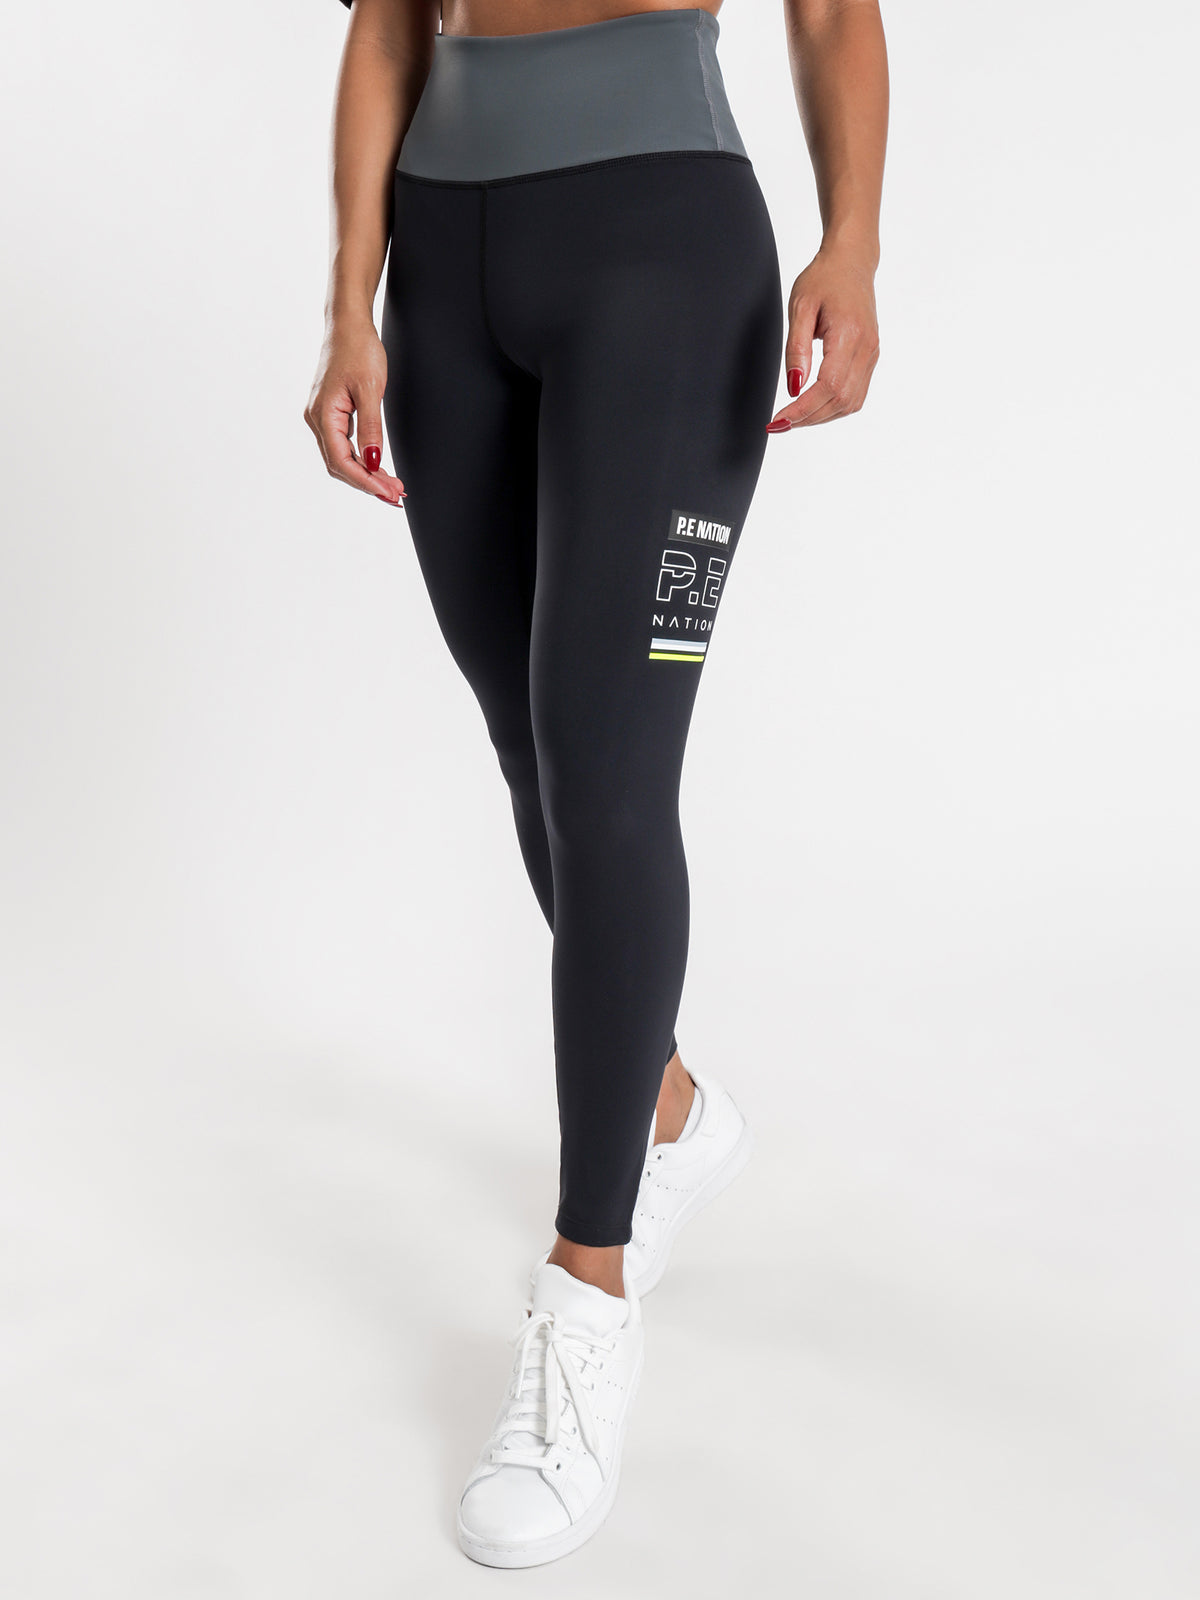 In Goal Legging in Black